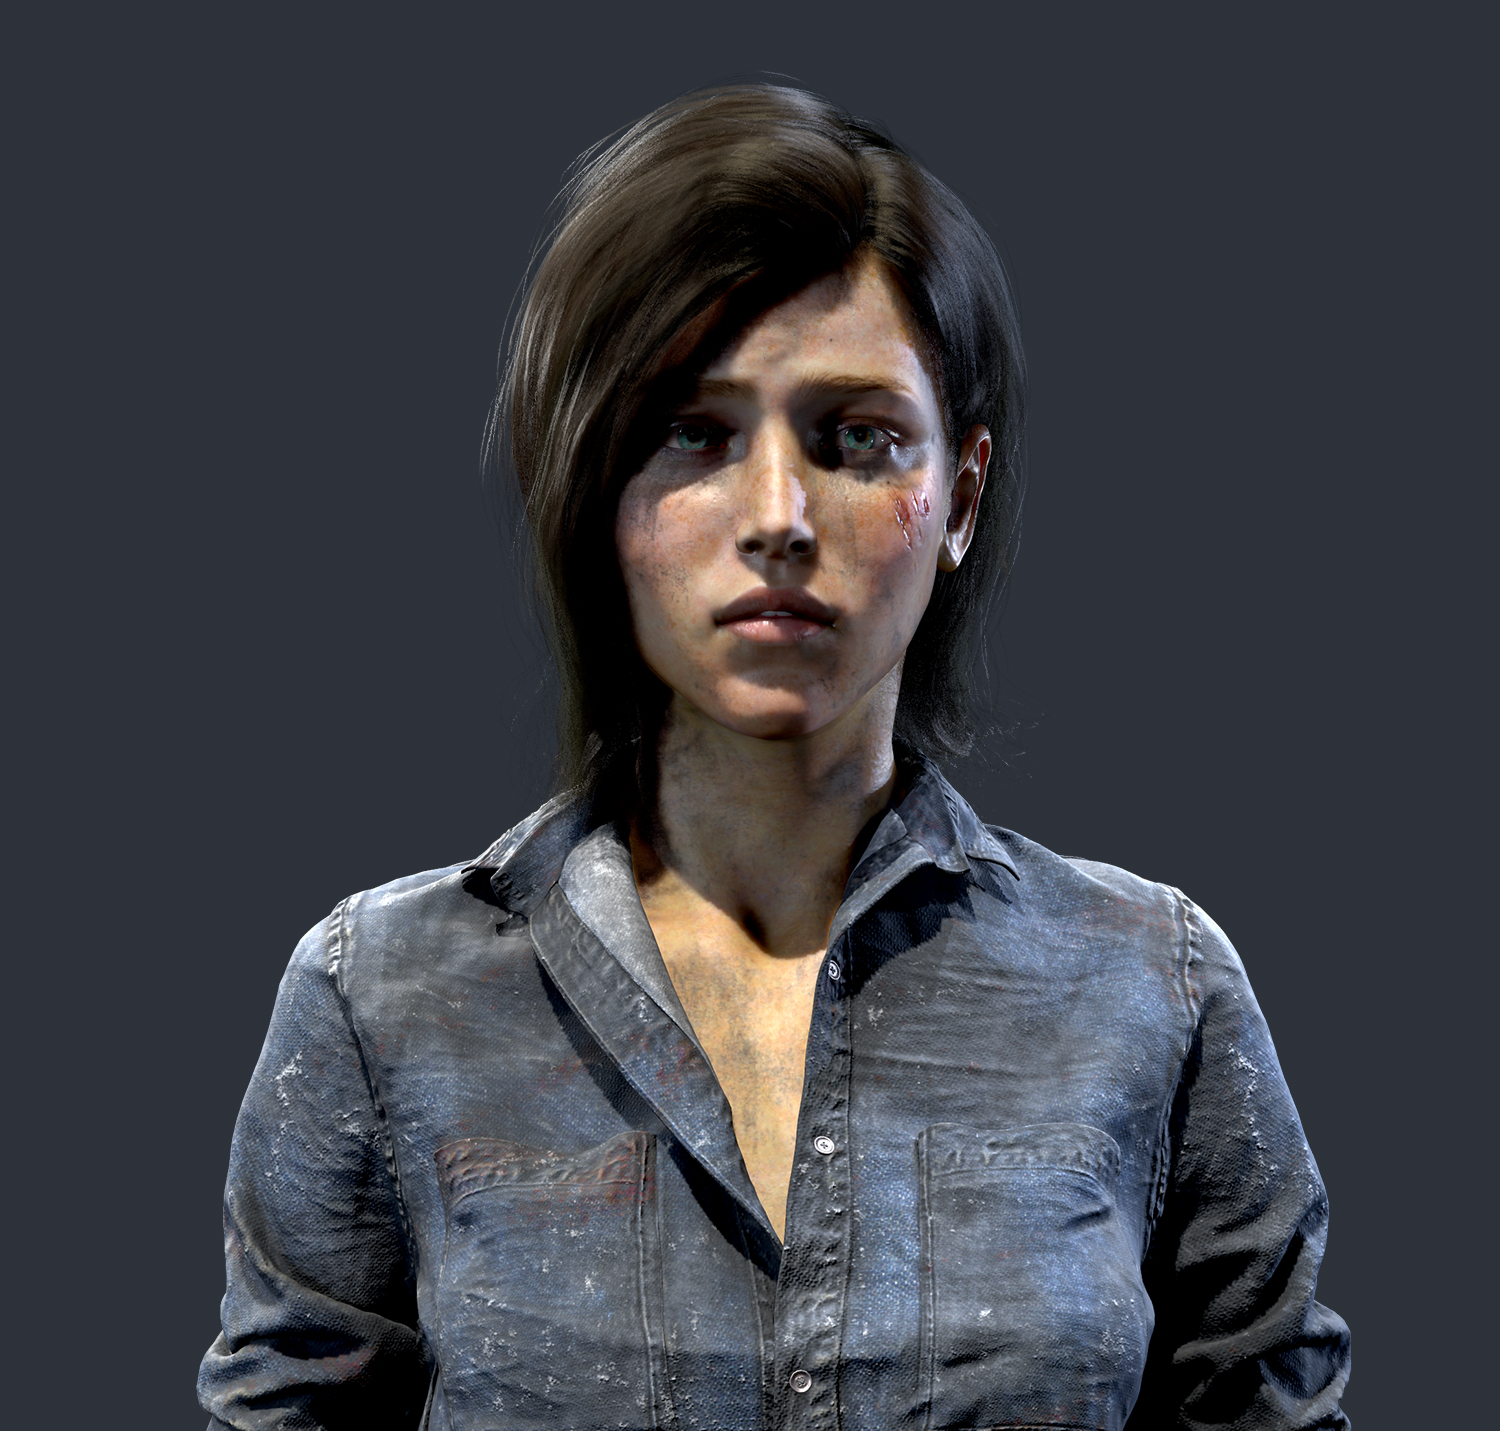 uAZqAig This Is What Ellie From The Last Of Us Looks Like Grown Up